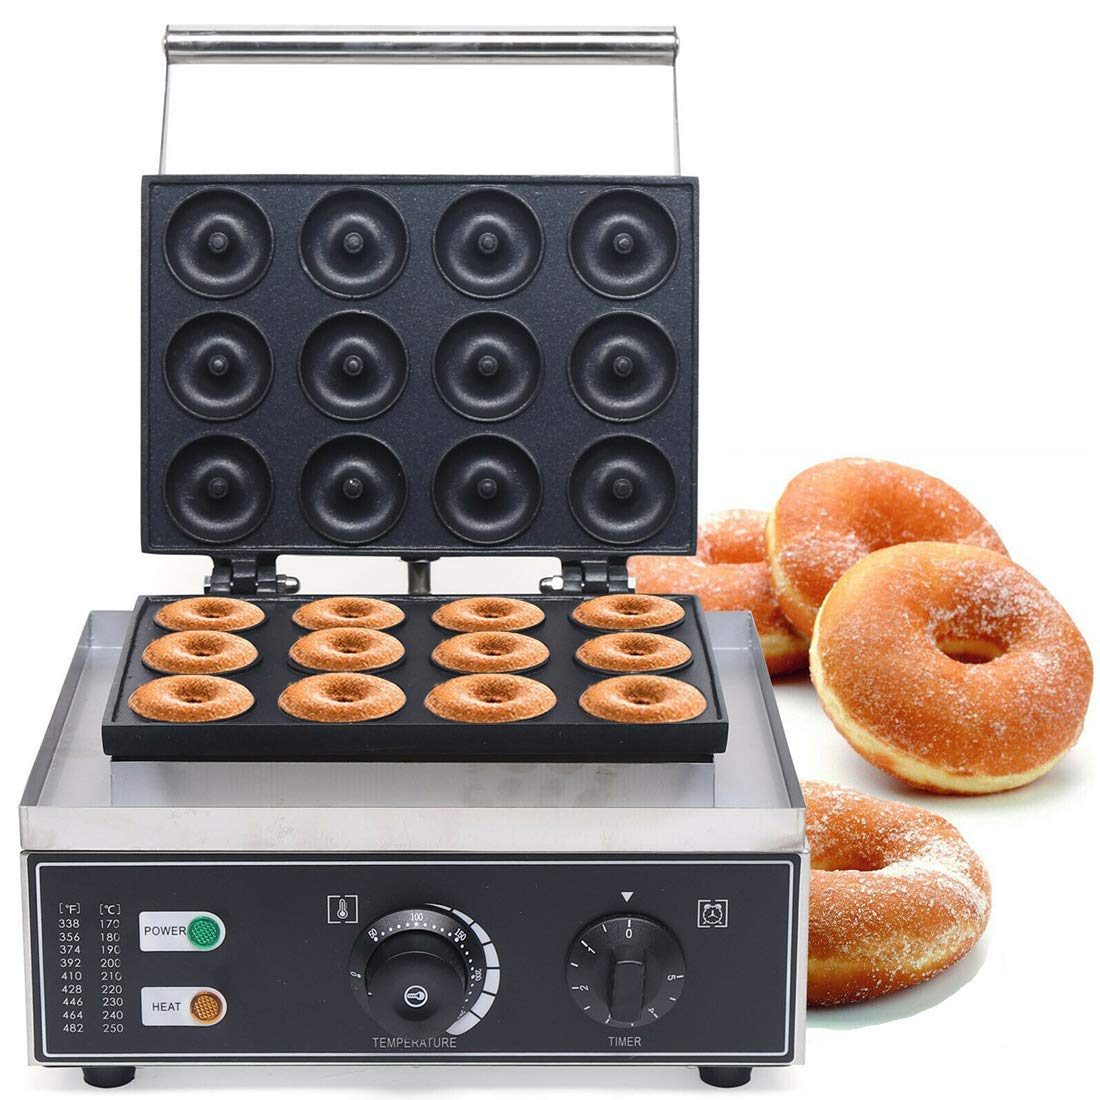 DNYSYSJ 12 Mini Donut Electric Maker 1500W for Breakfast Snacks Desserts with Non-stick Surface Stainless Steel Countertop Mini Cupcake Pie and Quiche Waffle Maker (12 Holes - 2in Each)